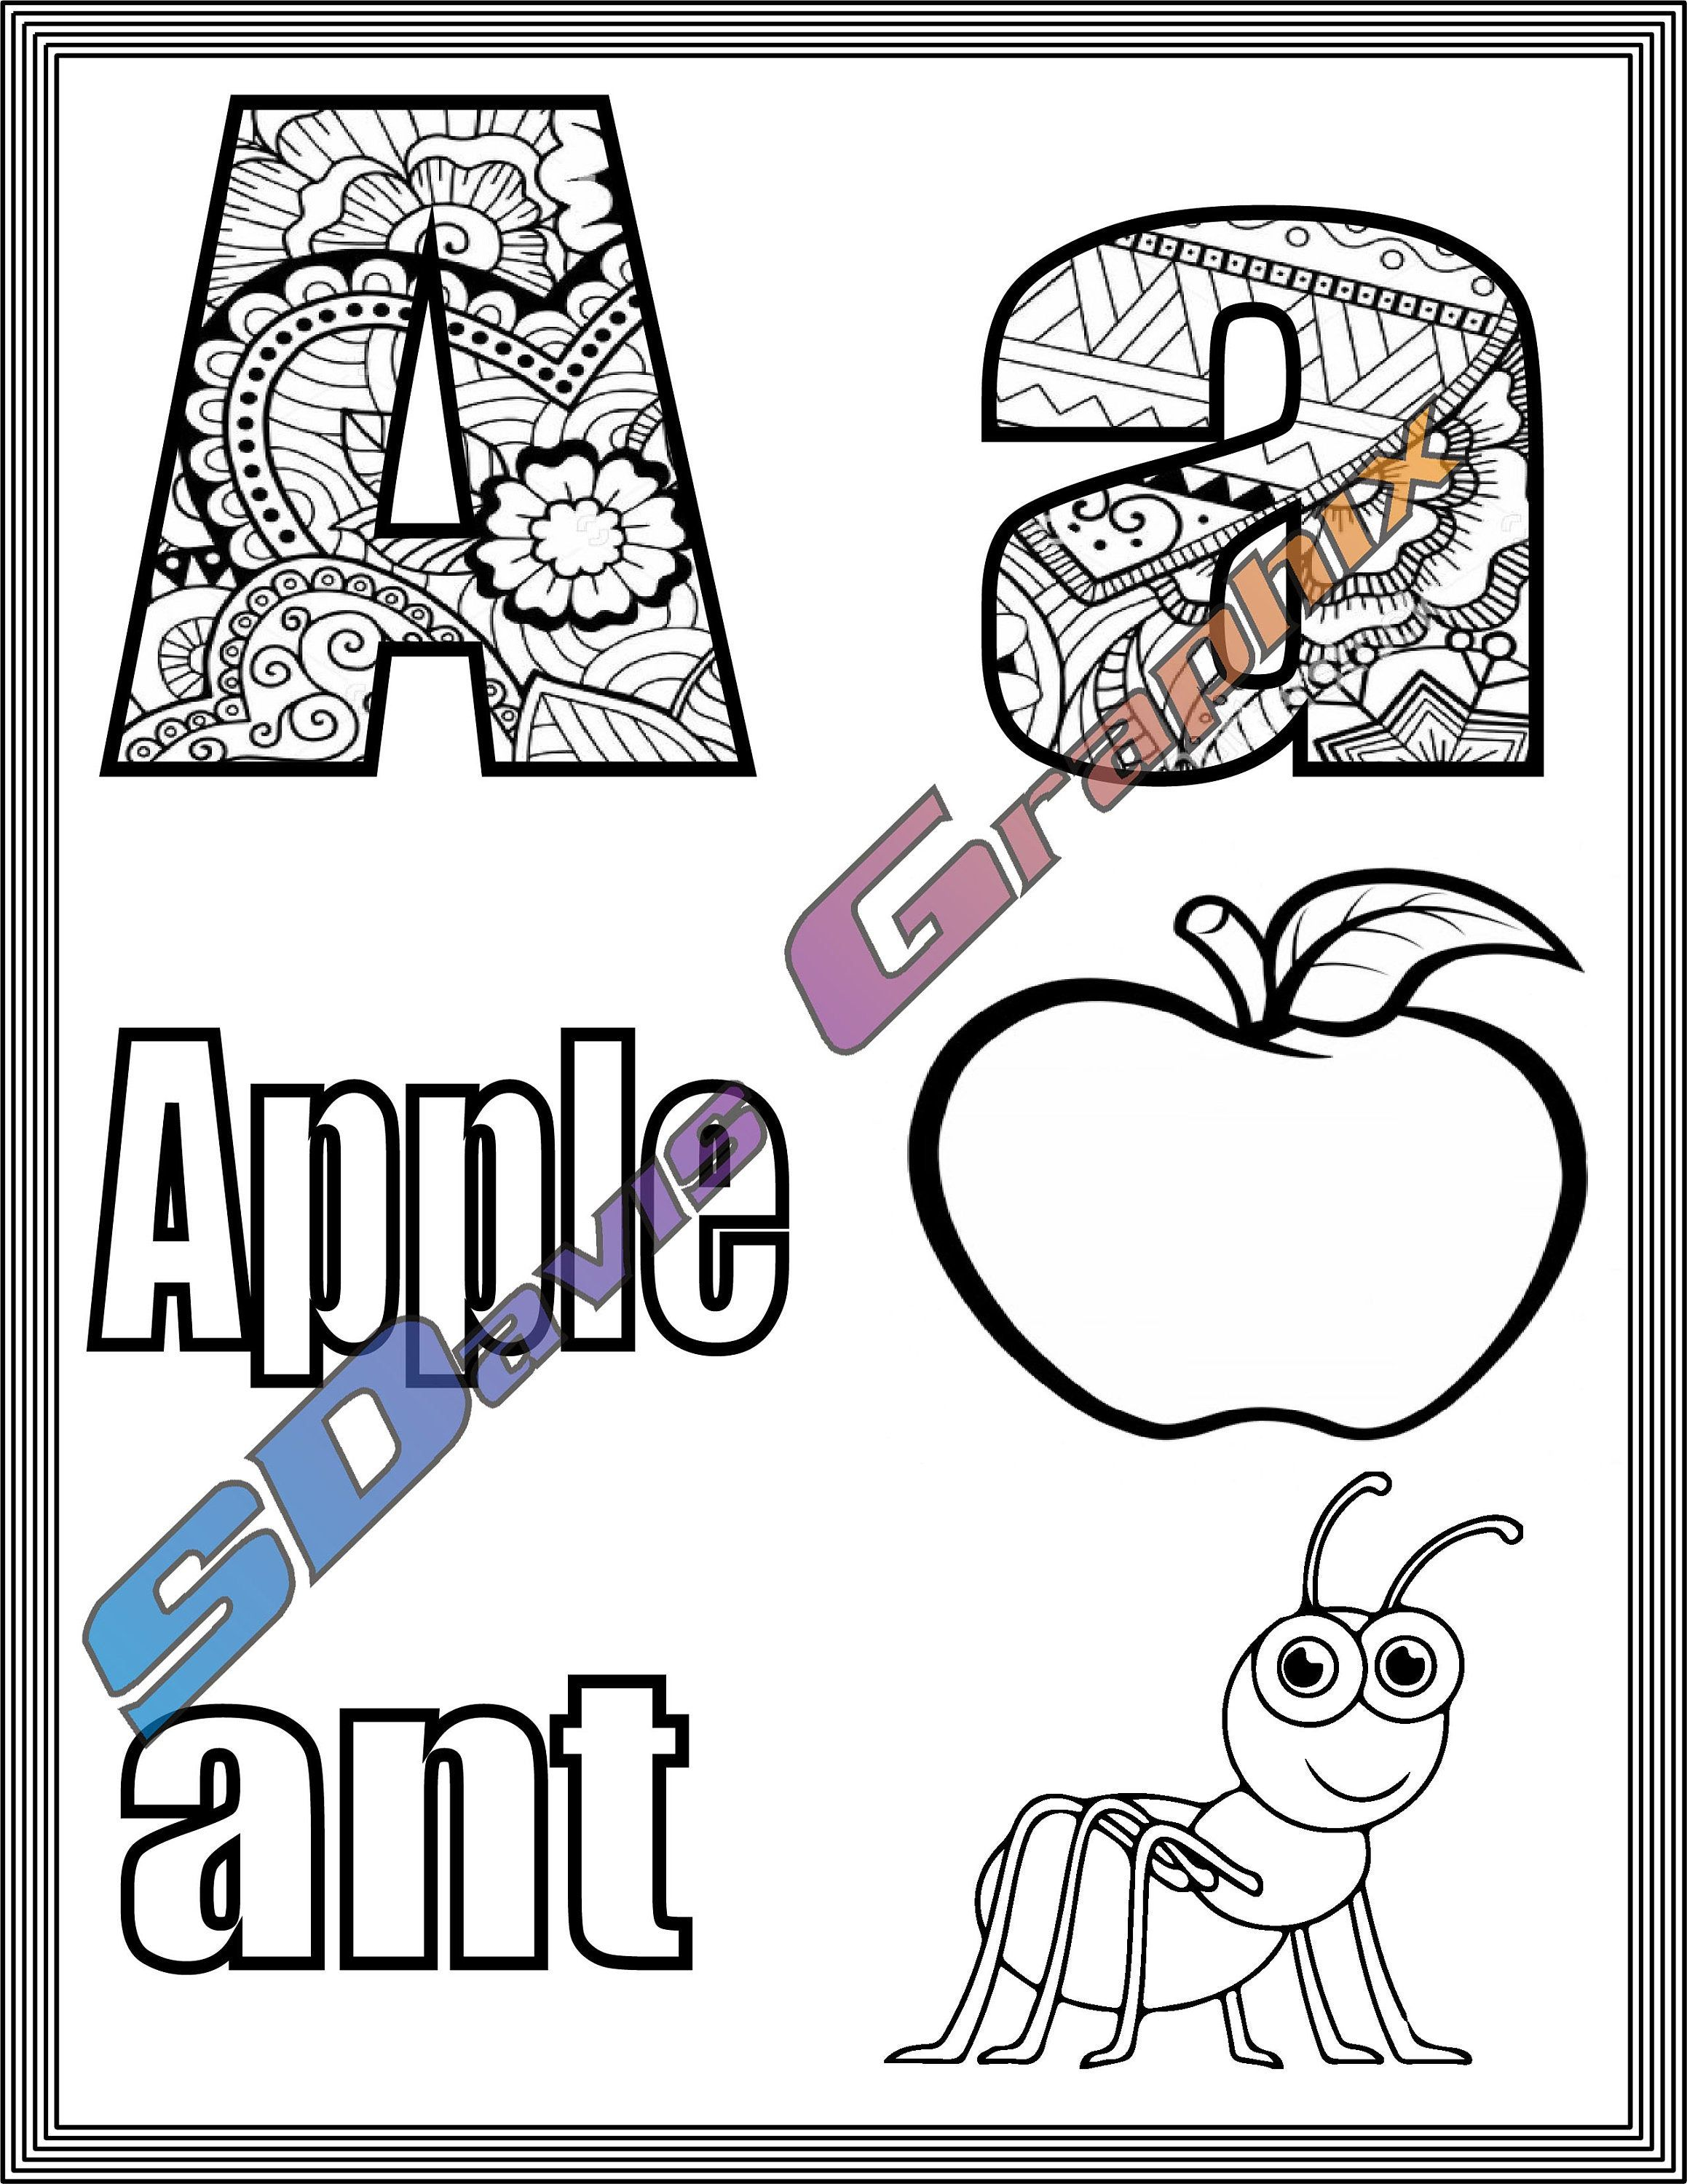 Kids Coloring Pages A To Z With Visuals Etsy In 2021 Coloring For Kids Coloring Pages Coloring Pages For Kids